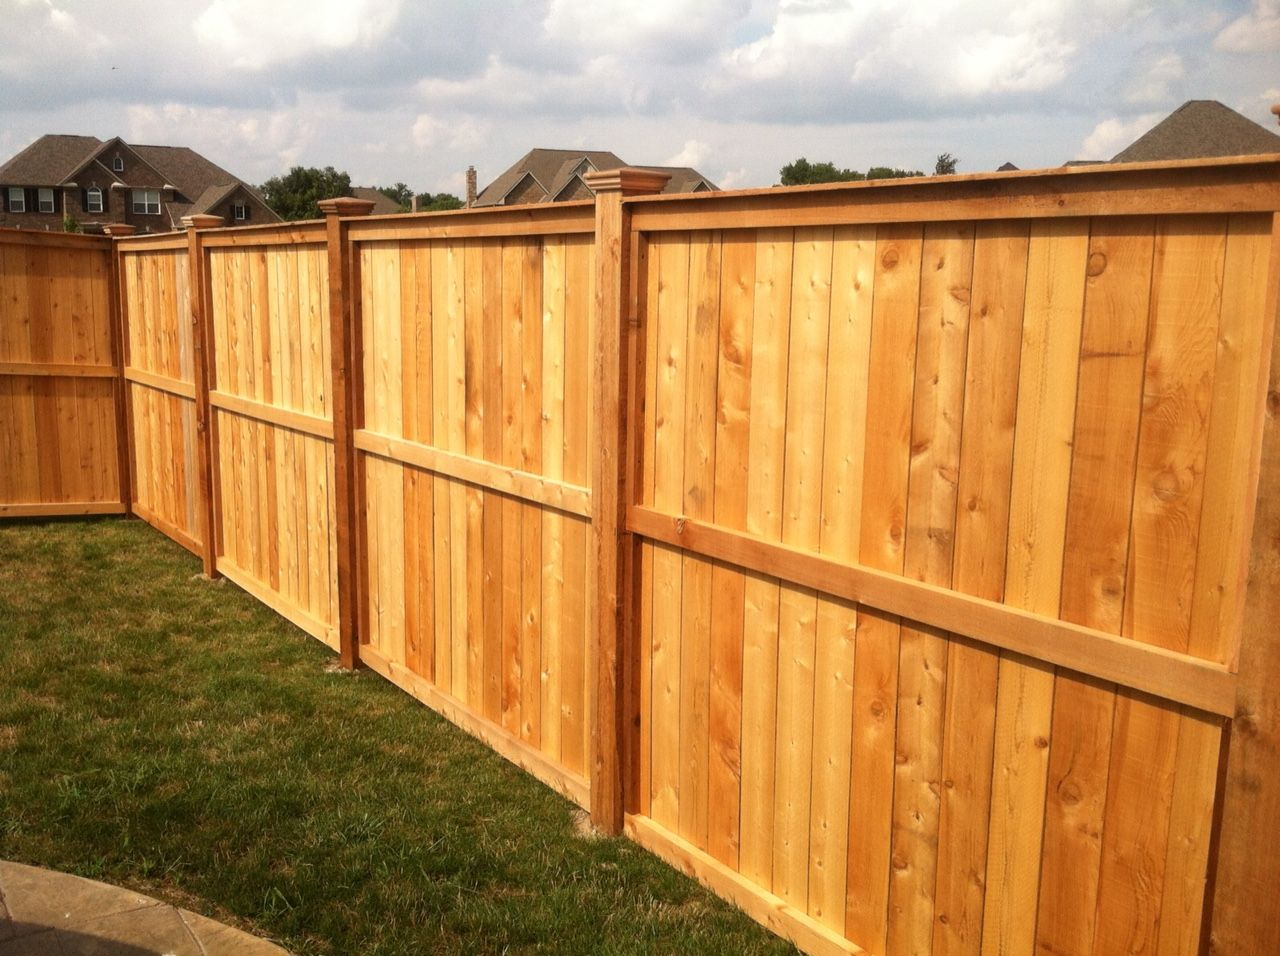 decorative wooden privacy fence fence pinterest privacy fences fences and gates. Black Bedroom Furniture Sets. Home Design Ideas